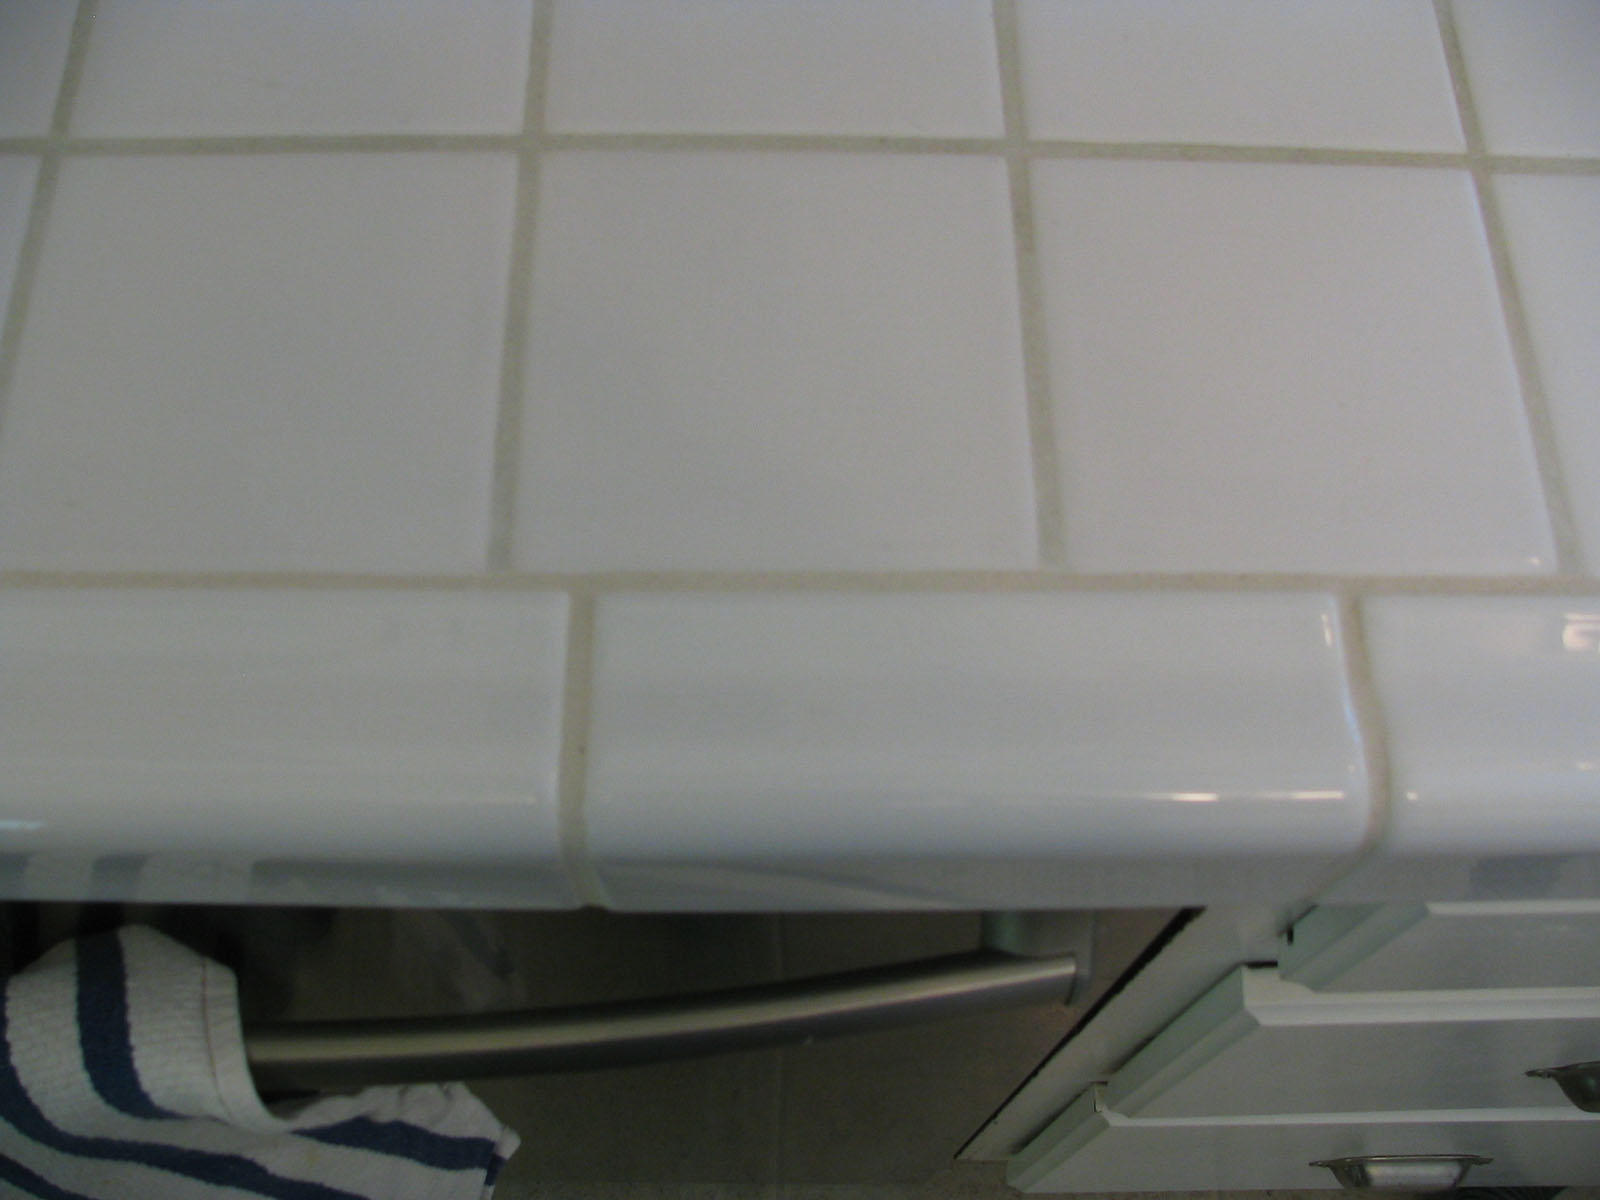 Top View Of Finished Dishwasher Area